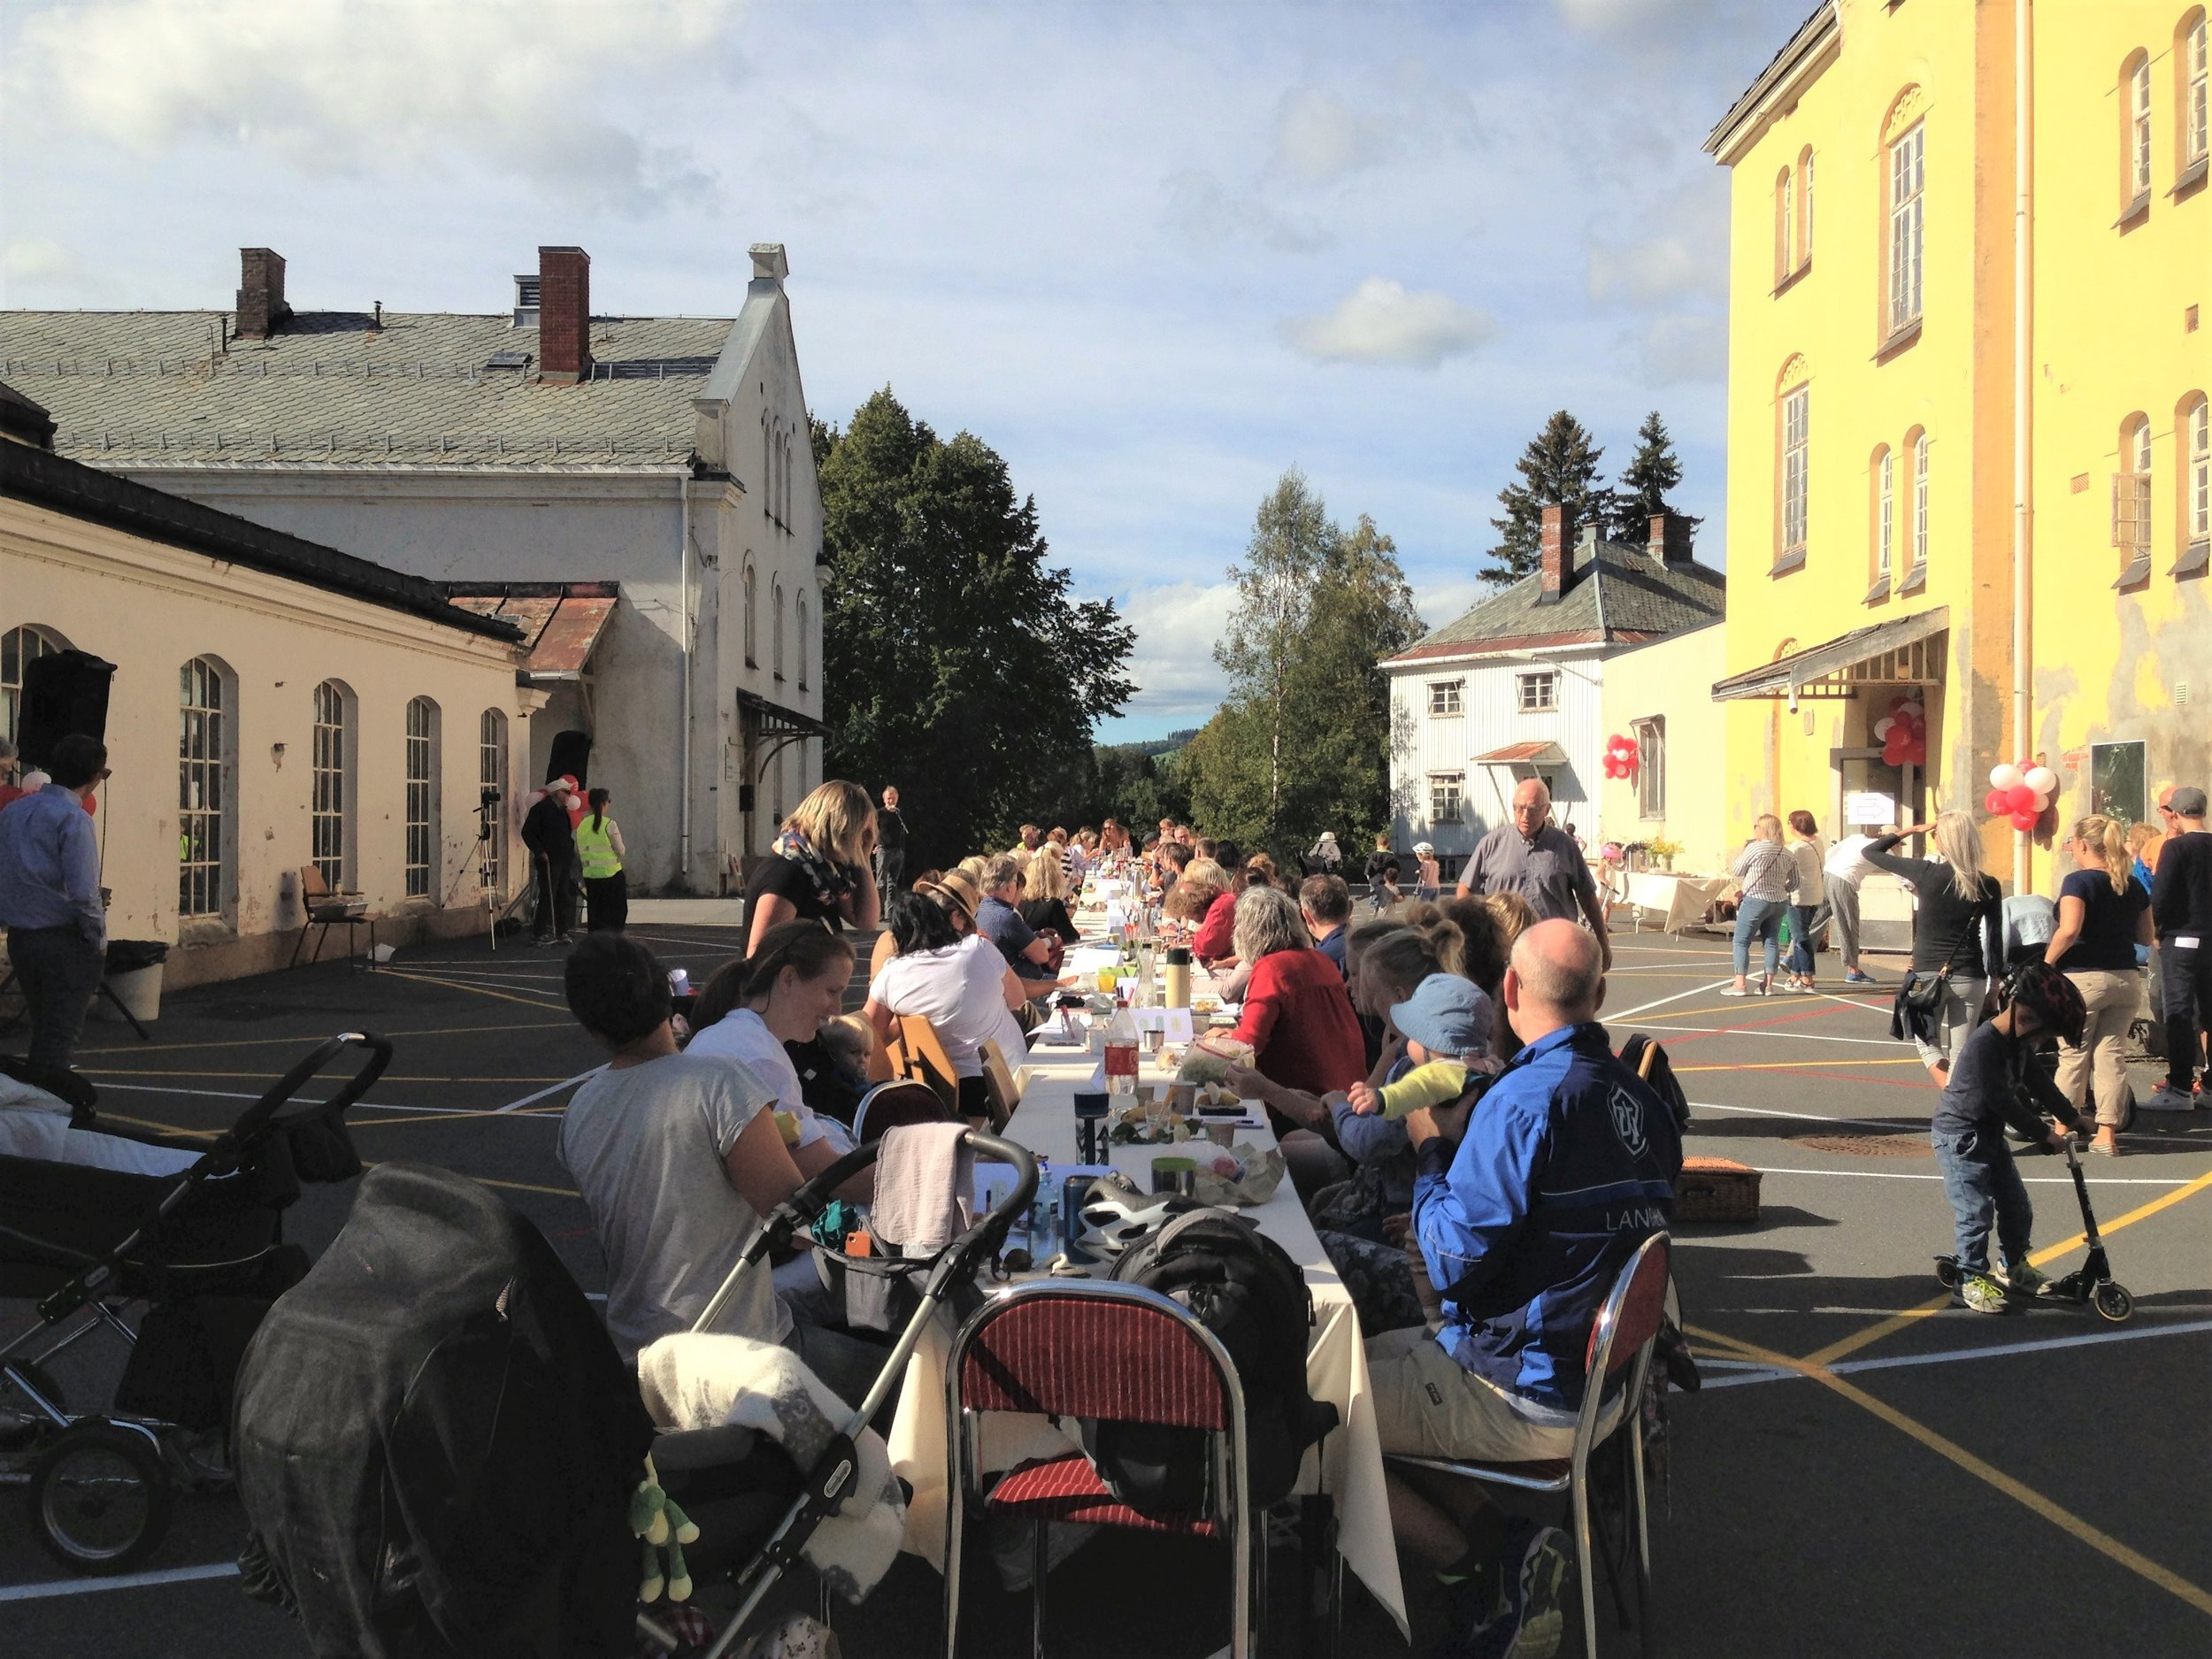 The asphalt became an urban floor serving as an arena for local community events. Photo: Miia-Liina Tommila